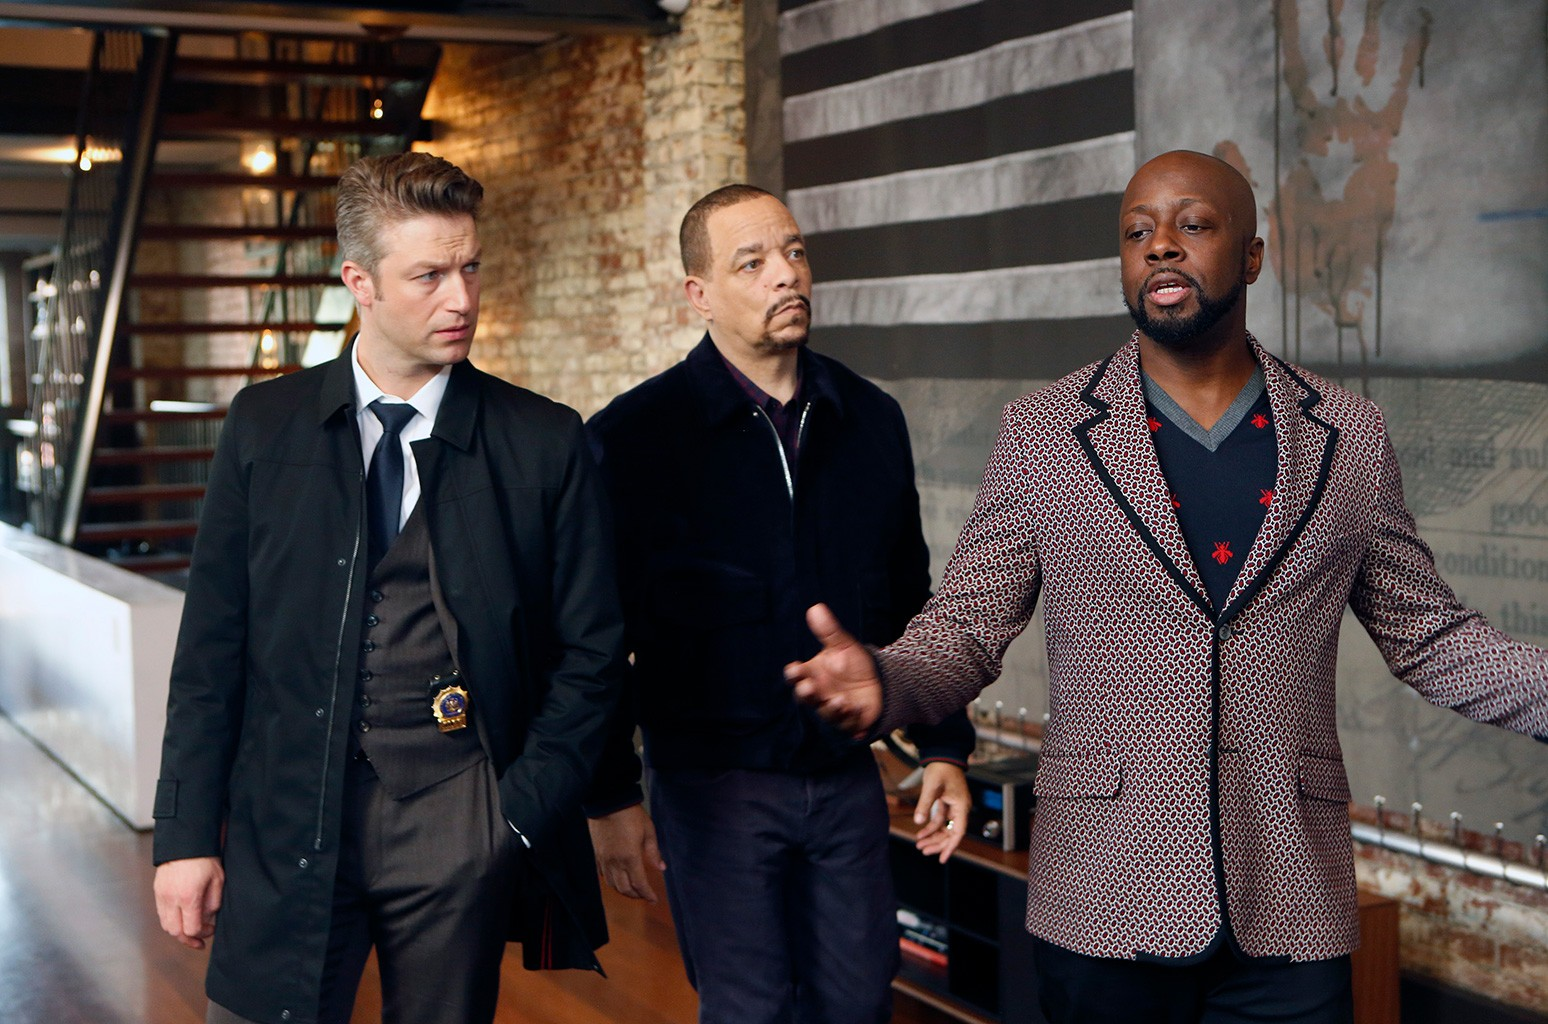 """?Peter Scanavino as Detective Sonny Carisi, Ice T as Detective Odafin """"Fin"""" Tutuola, Wyclef Jean as Vincent Love on """"Broken Rhymes"""" Episode 1807 on Law & Order: Special Victims Unit."""